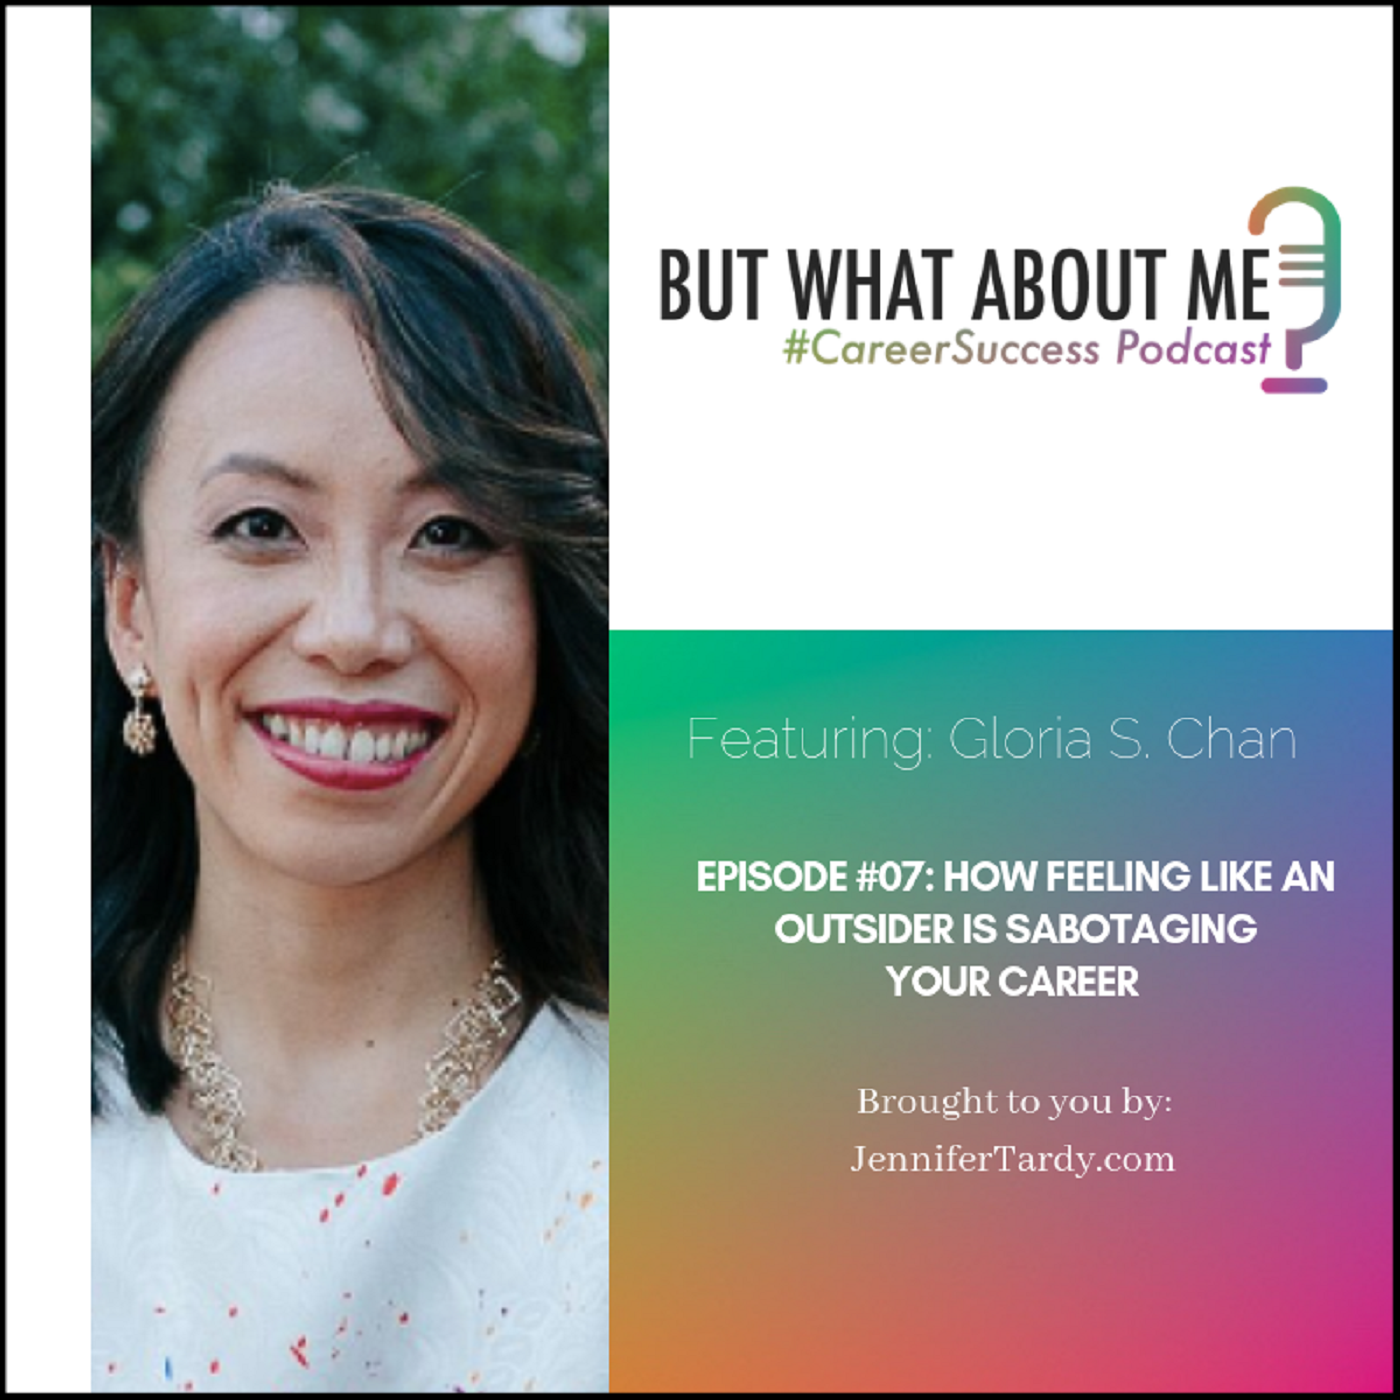 Episode 07: How Feeling Like an Outsider Is Sabotaging Your Career